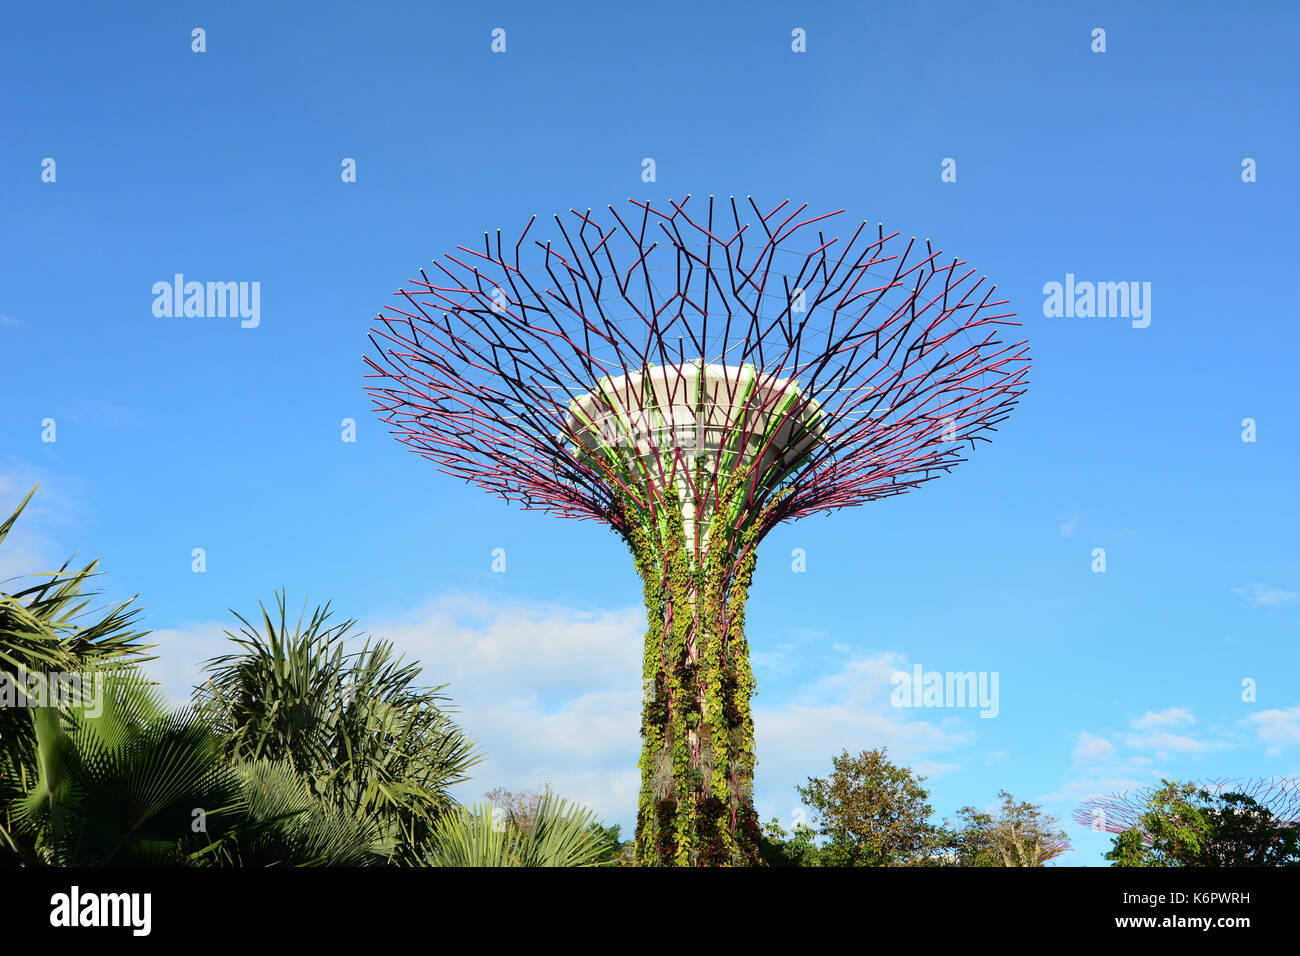 Singapore - Mar 12, 2016. A supertree at the Gardens by the Bay in Singapore. The supertrees are much more than an ostentatious display of contemporar - Stock Image